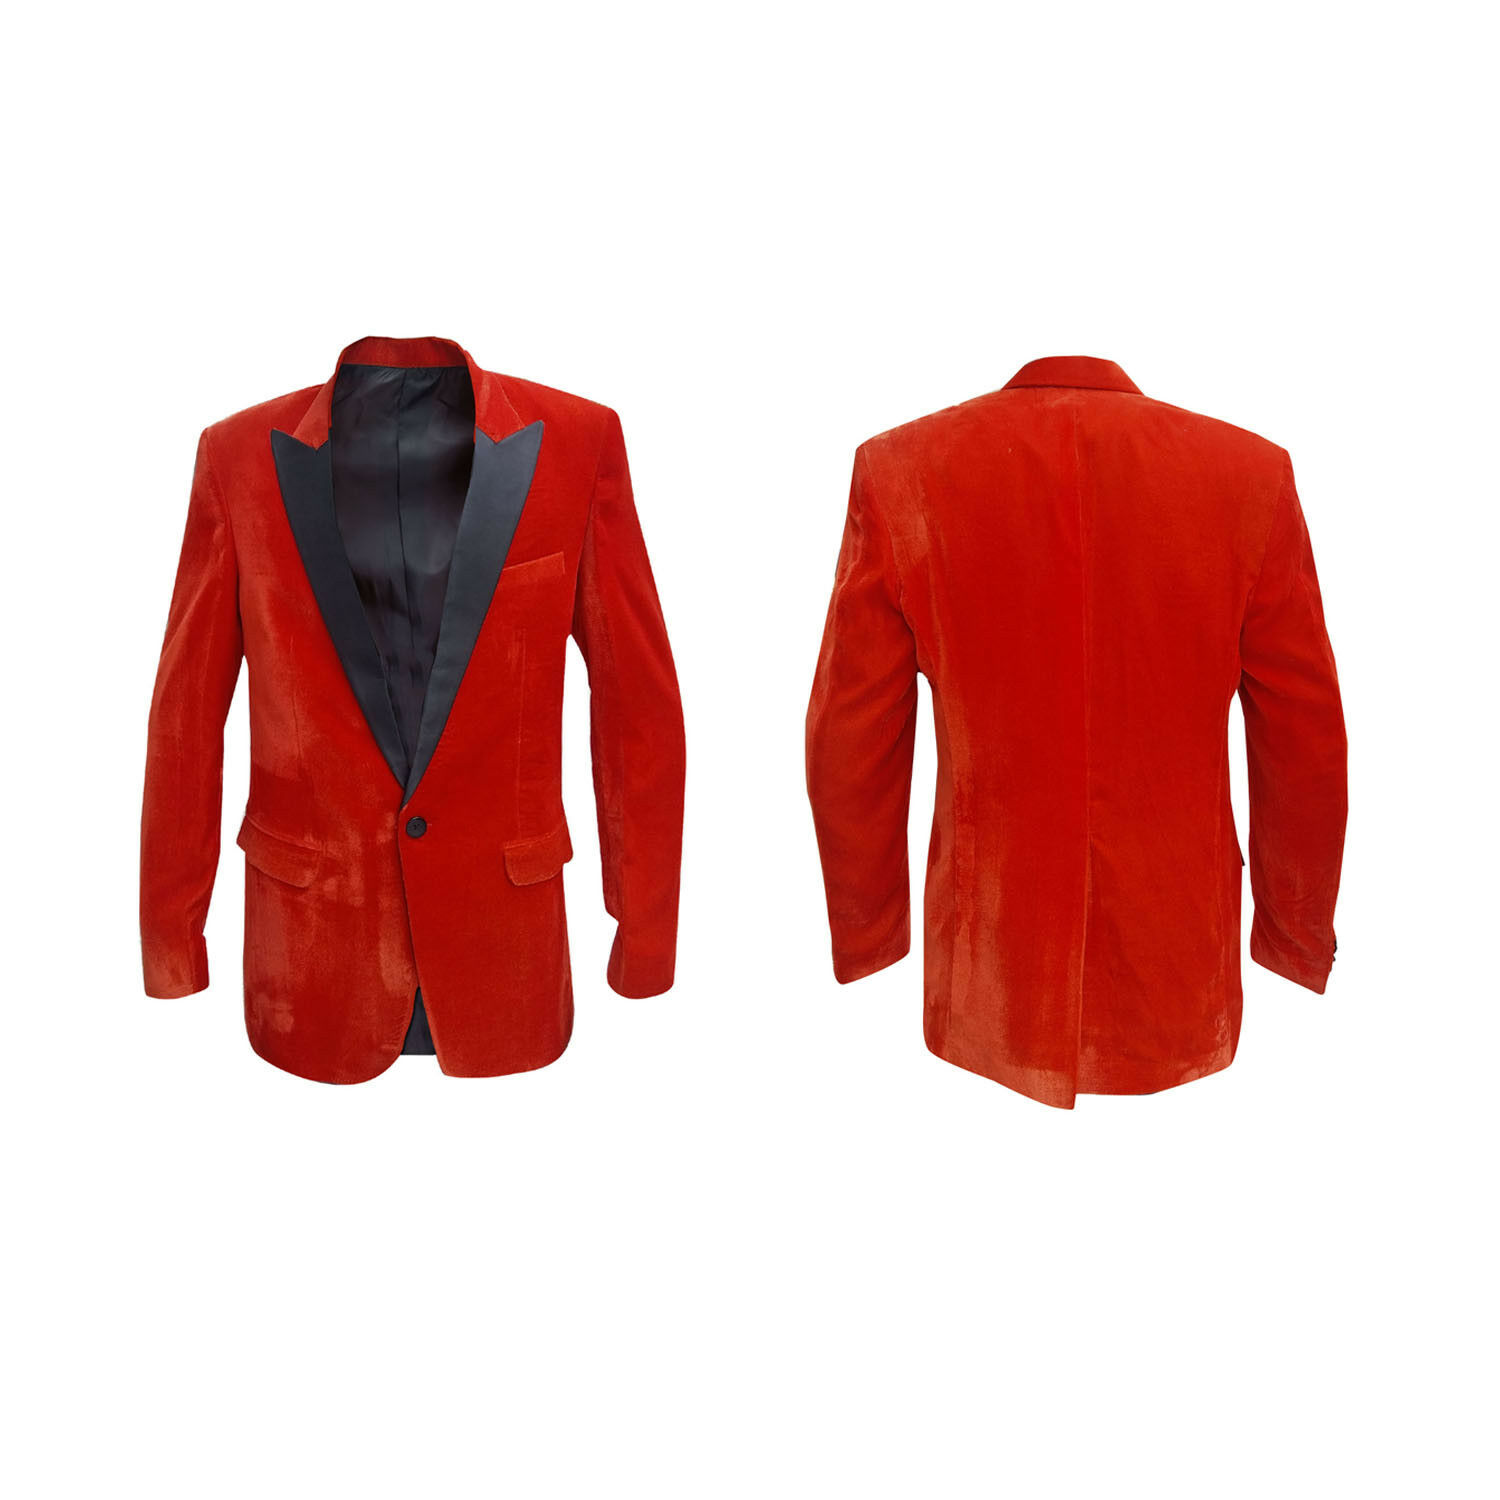 Kings man 2 The golden Circle Tuxedo Coat orange   All Sizes